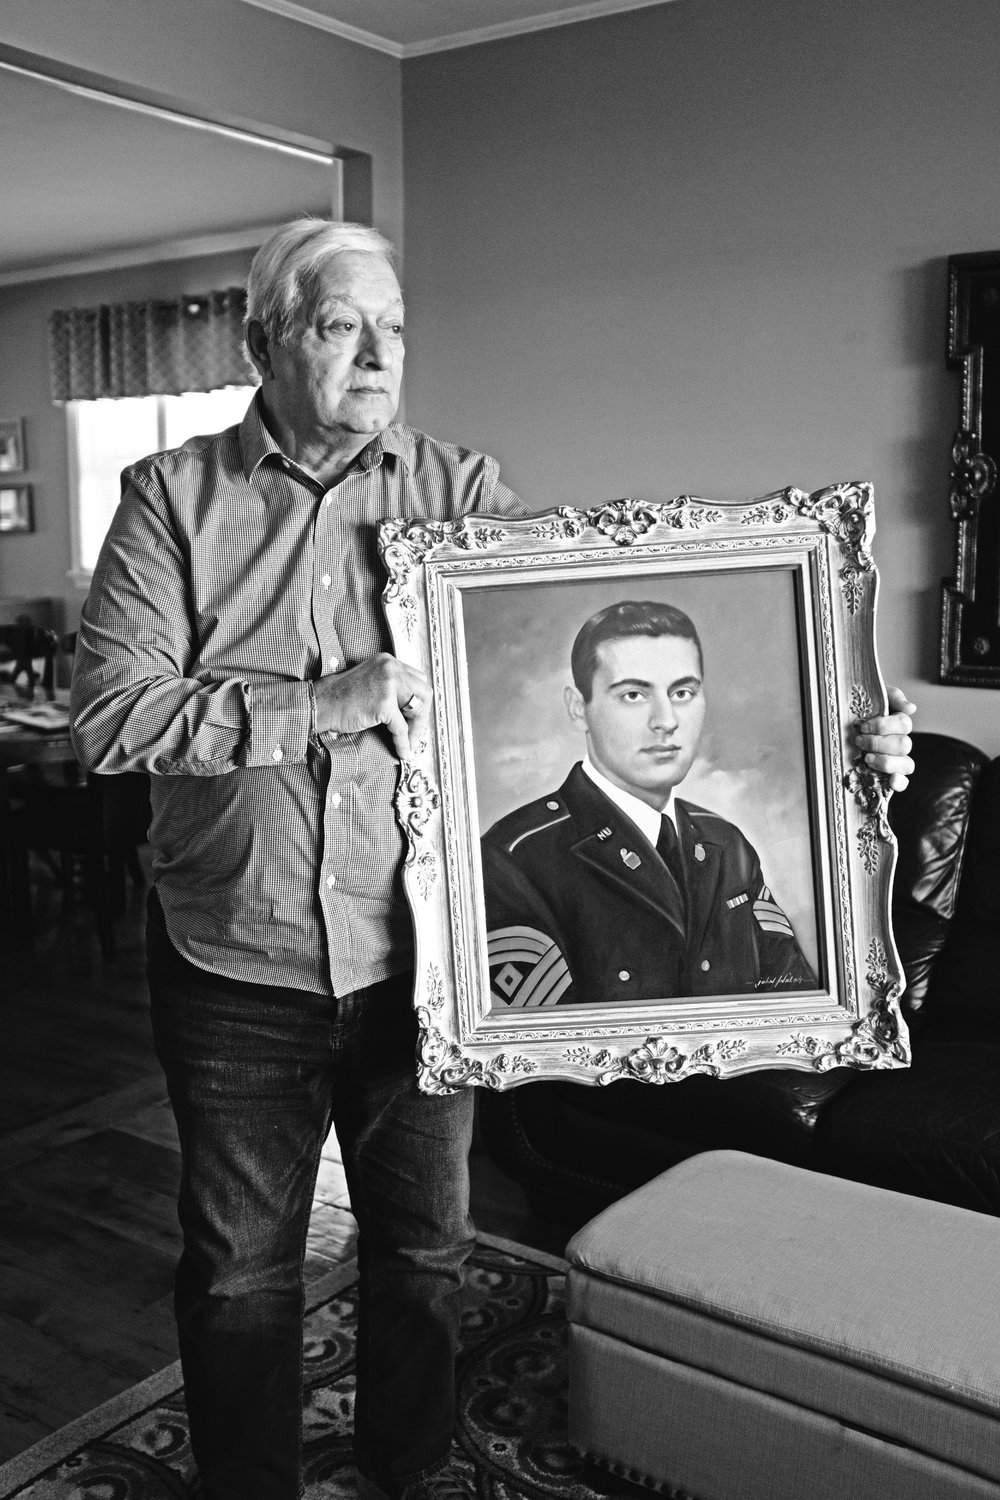 Tony D'Amico with a painting of his brother, Frank, which hangs in his bedroom. He and his siblings had the portrait painted following Frank's death as a gift to their parents. (Photograph by Thi Linh Wernau)